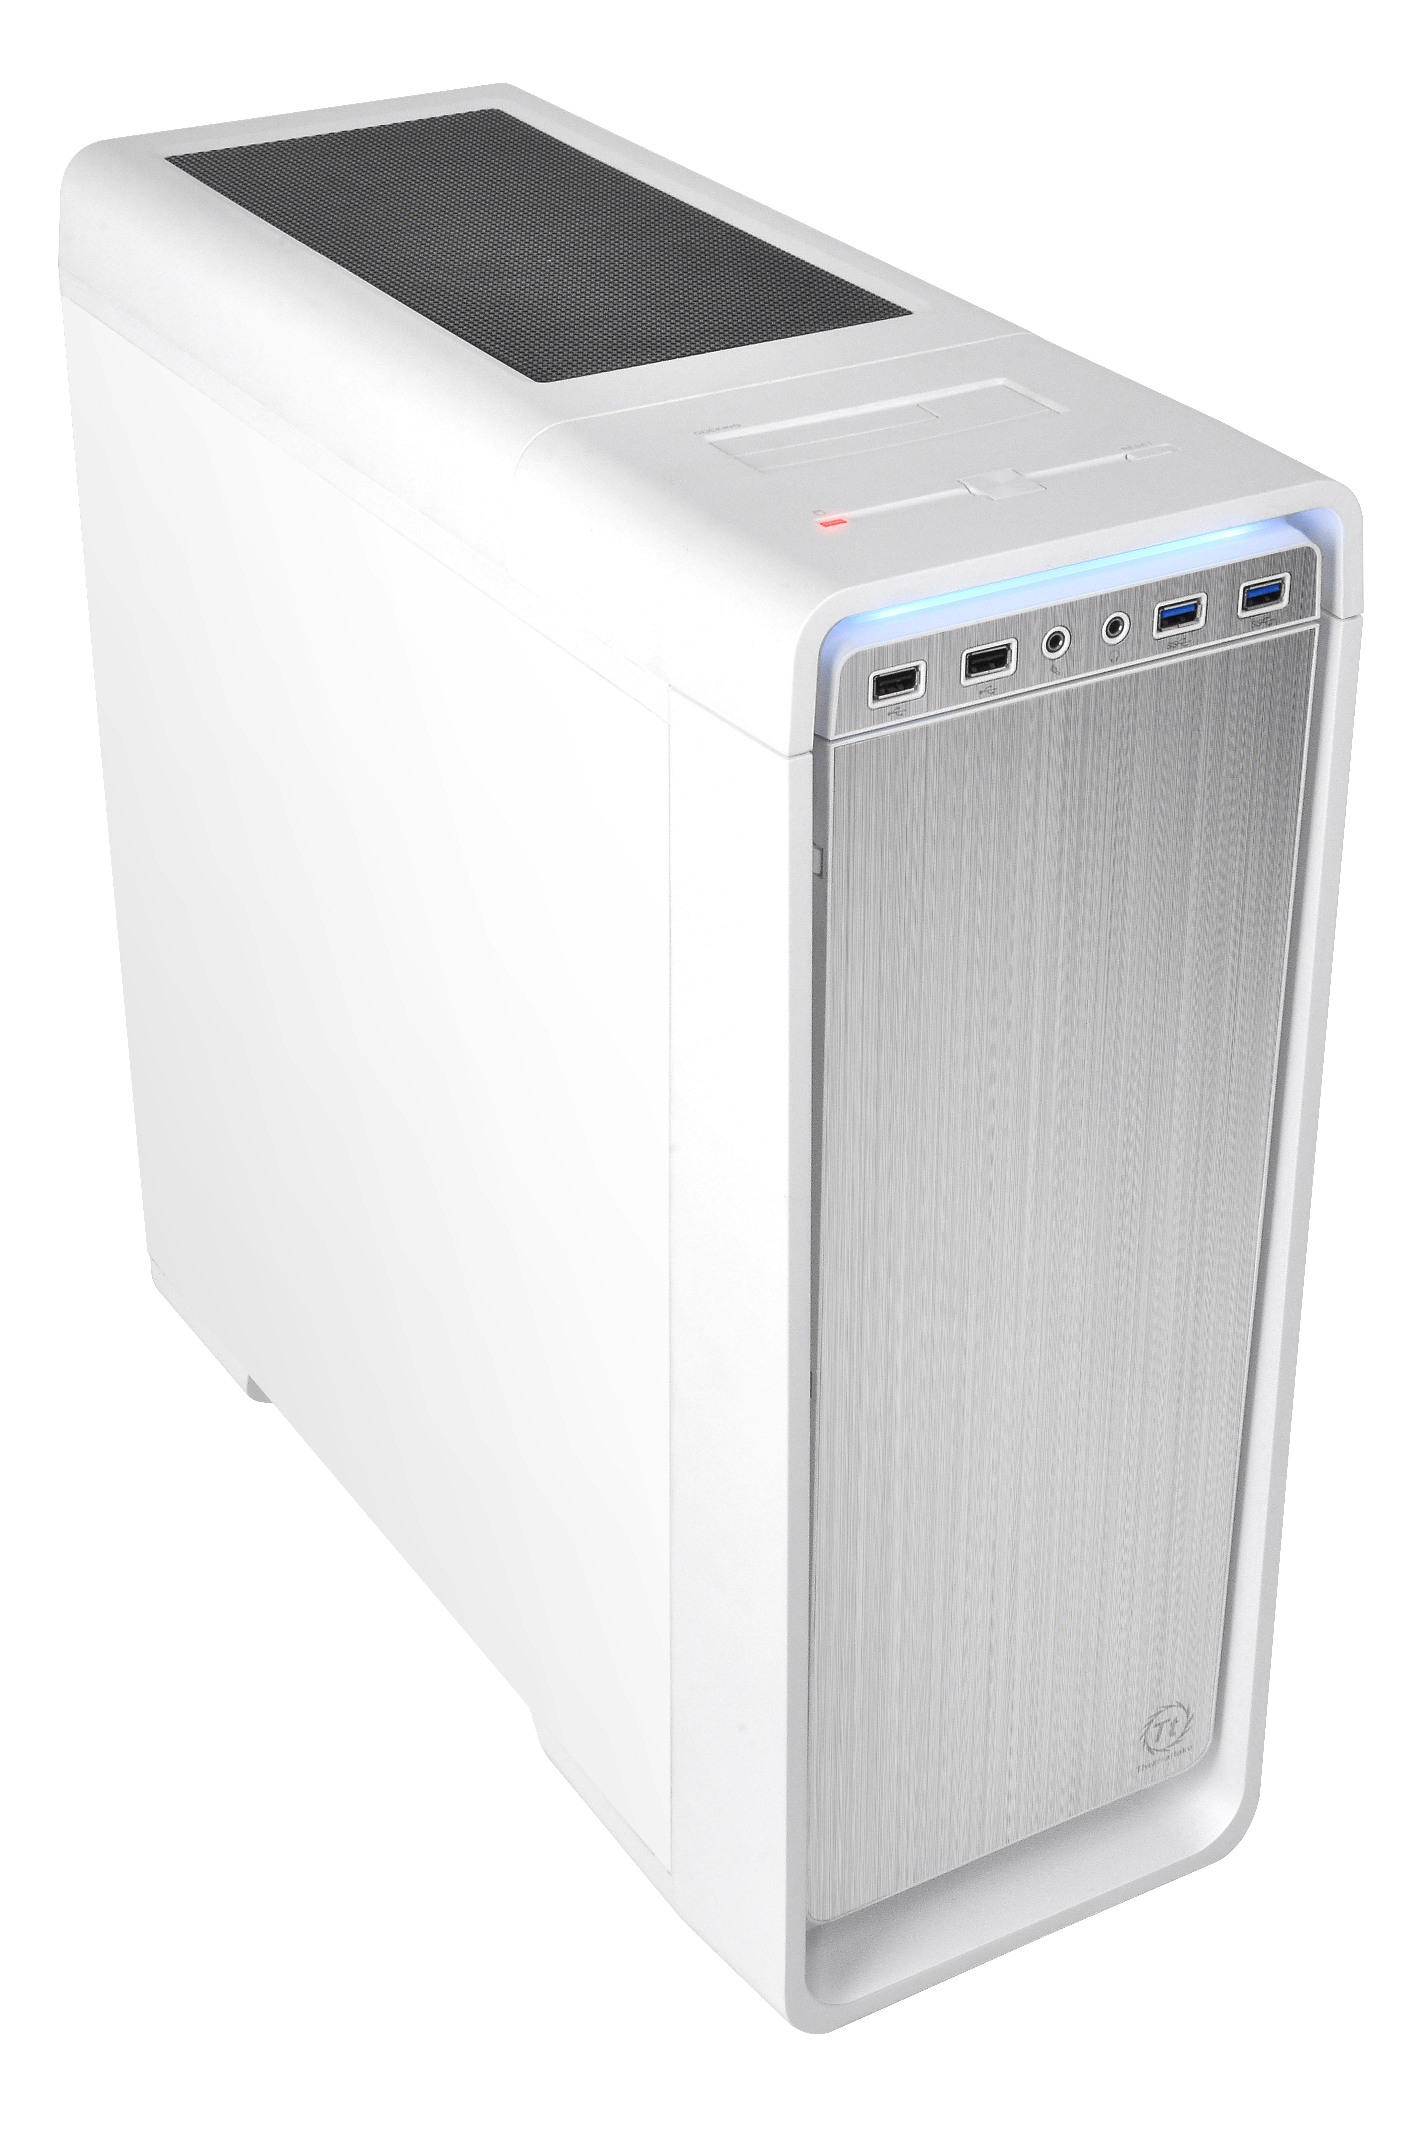 Thermaltake New Urban S31 Snow Edition, Simply Pure yet Elegant Refined